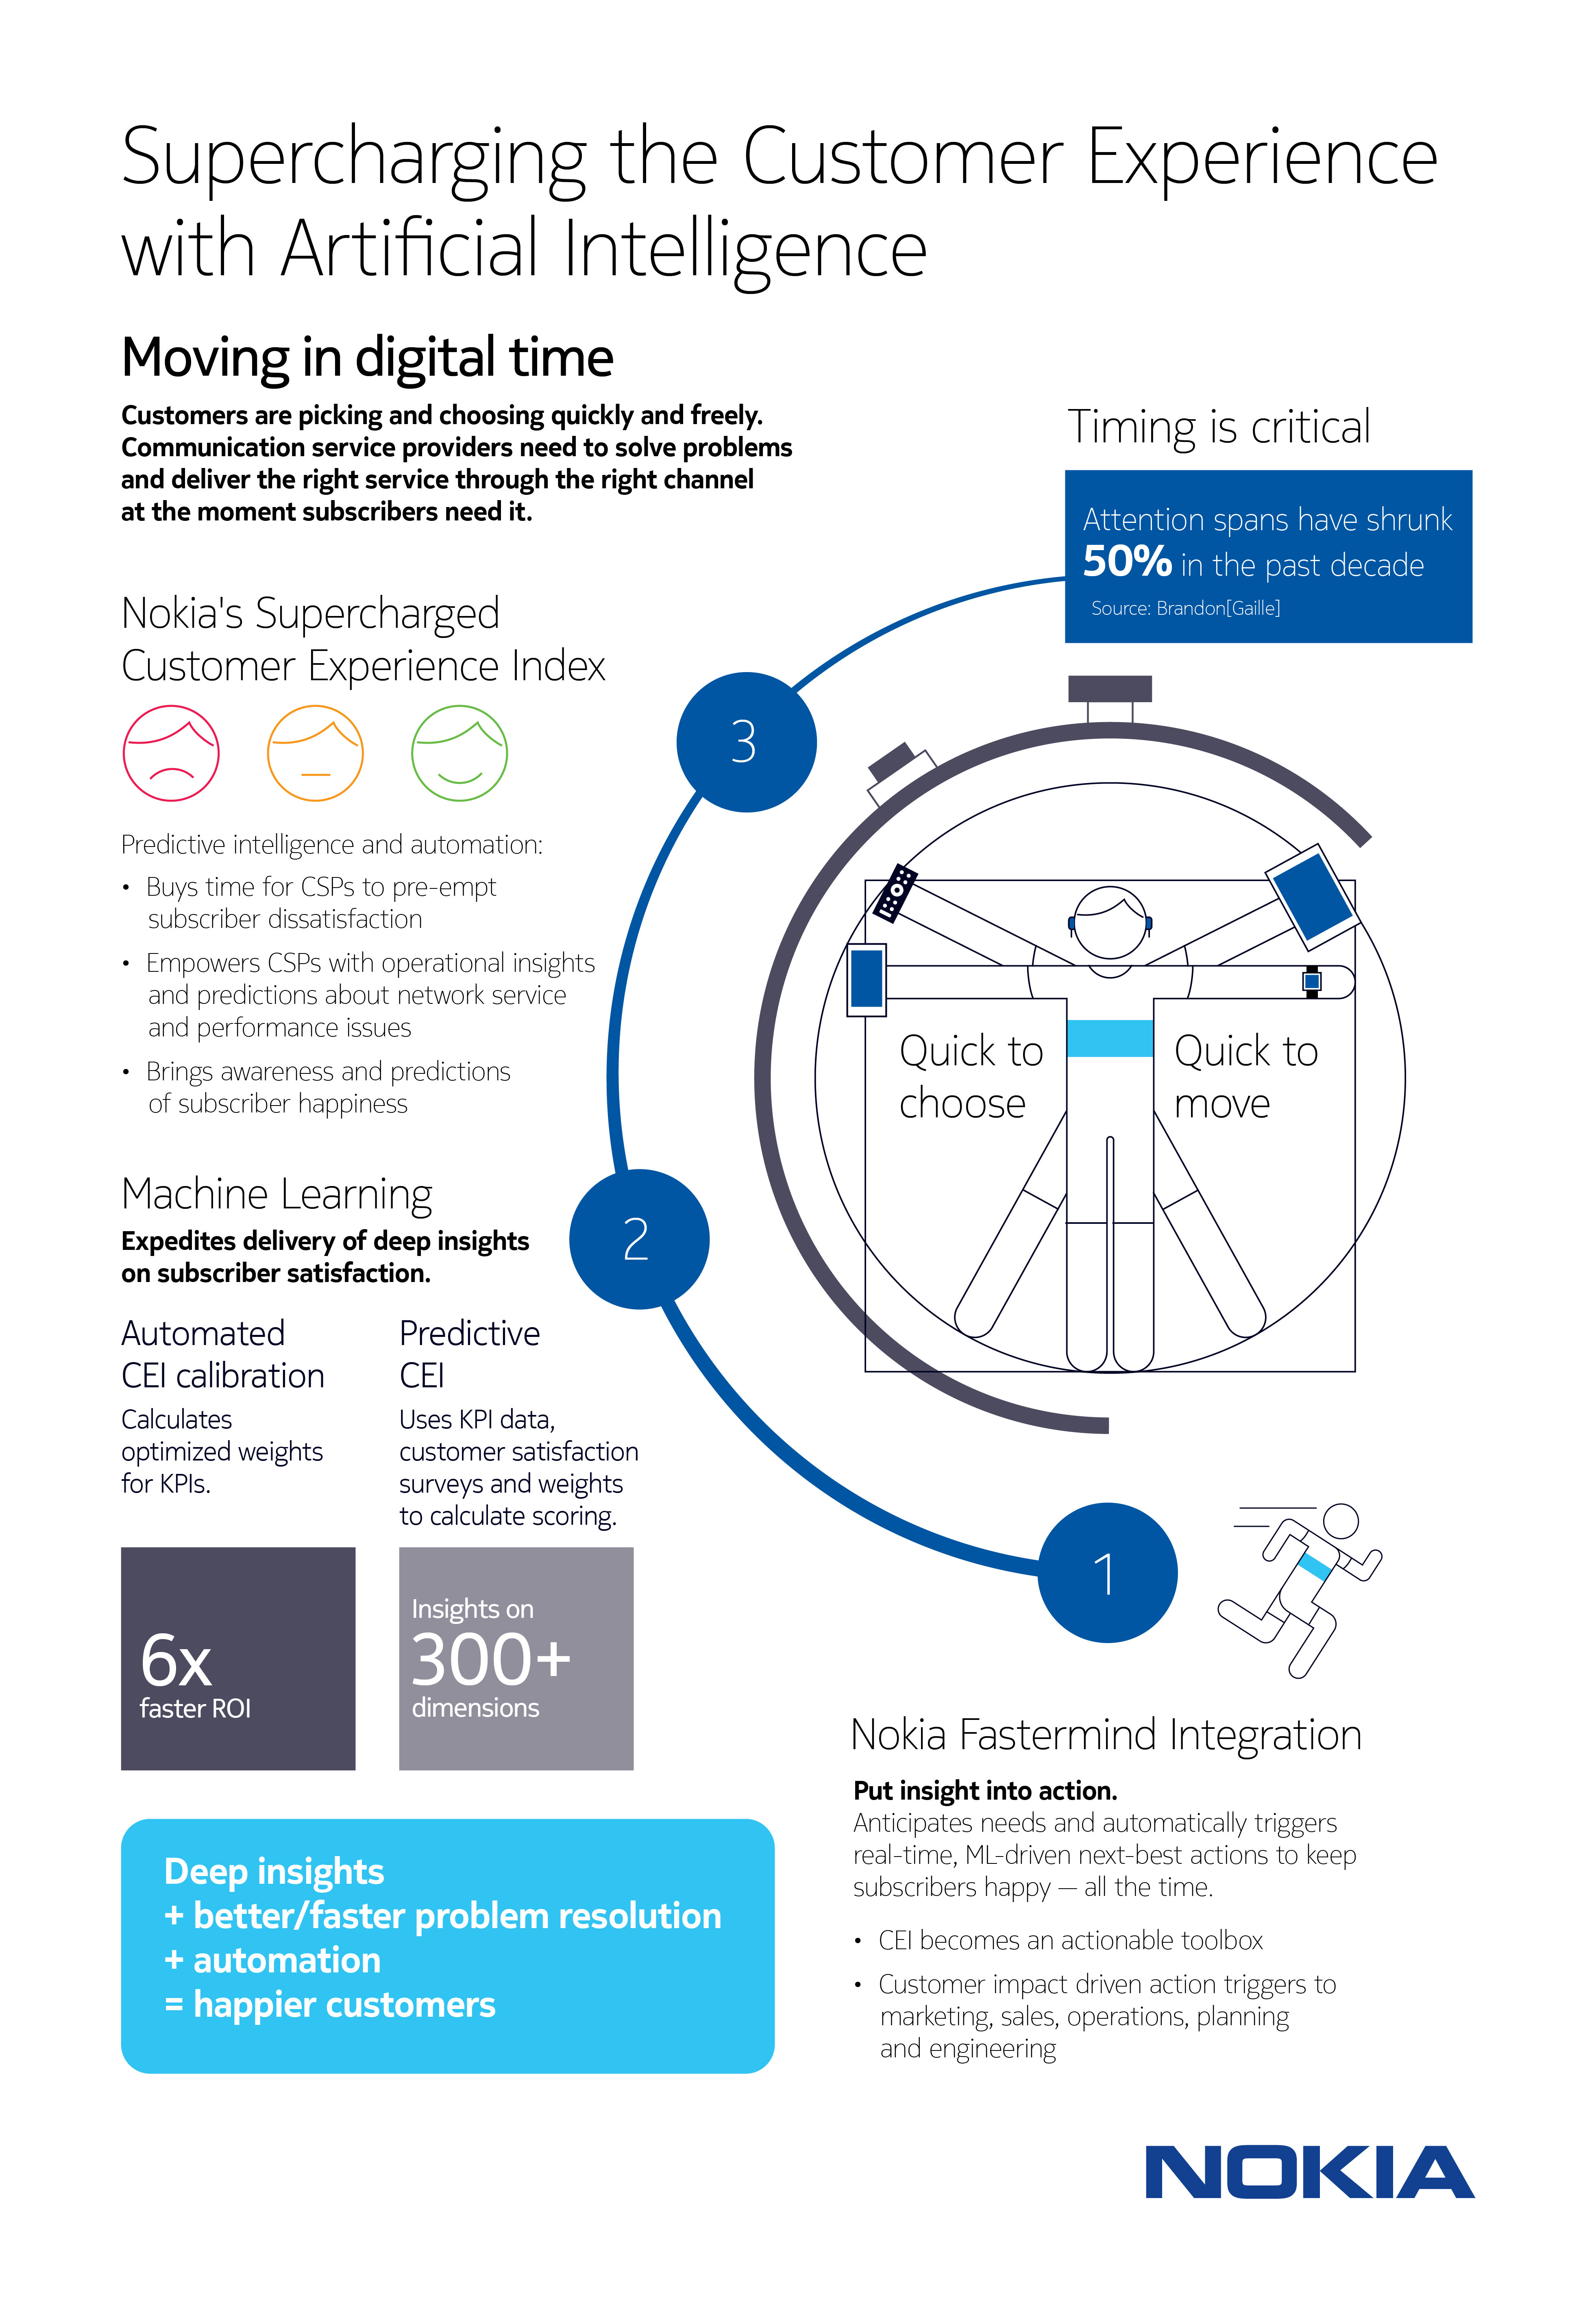 Nokia Software Artificial Intelligence Infographic.png